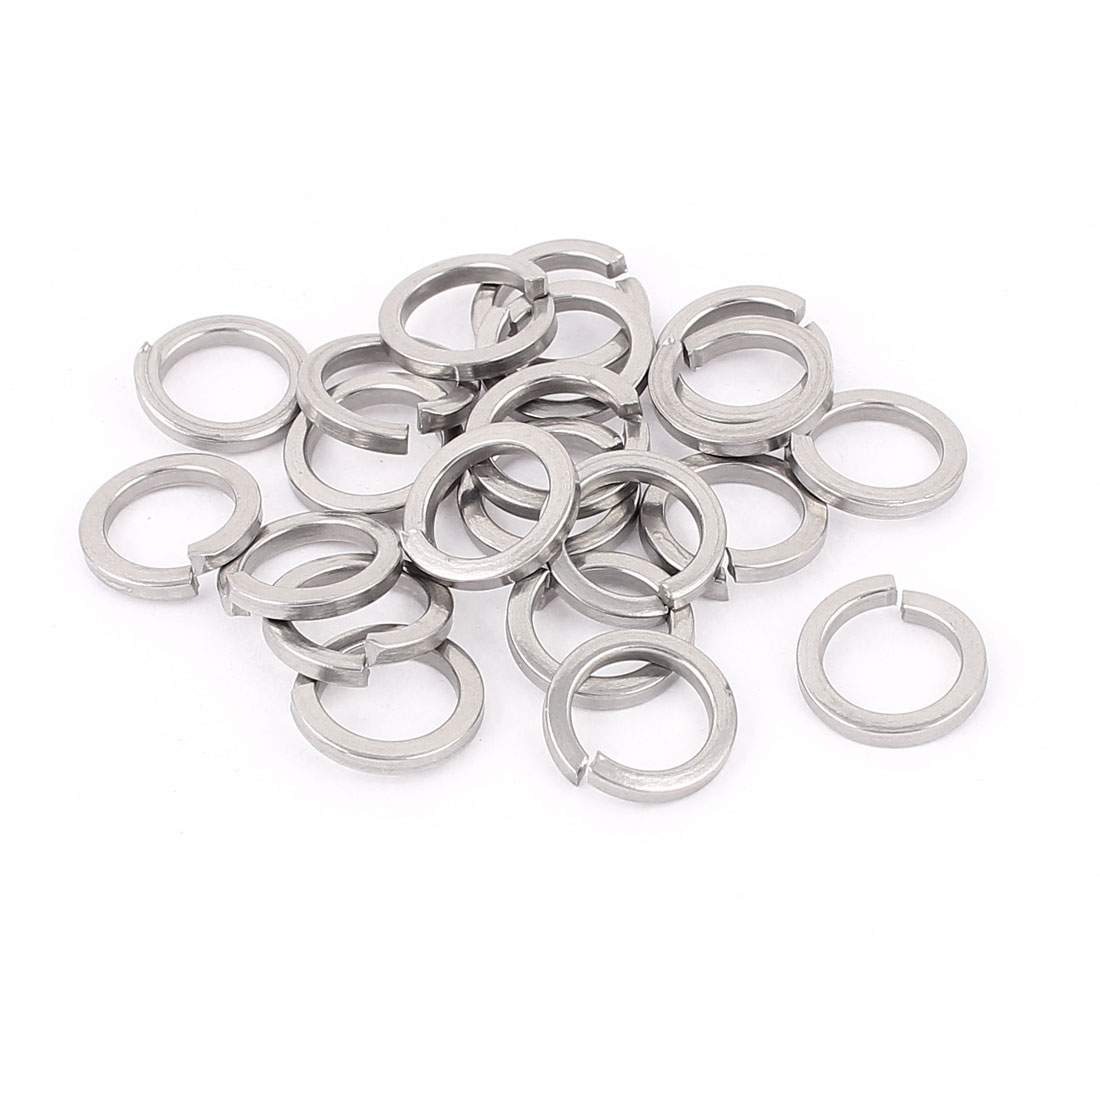 20pcs 304 Stainless Steel M10 Spring Lock Washers Screw Pad